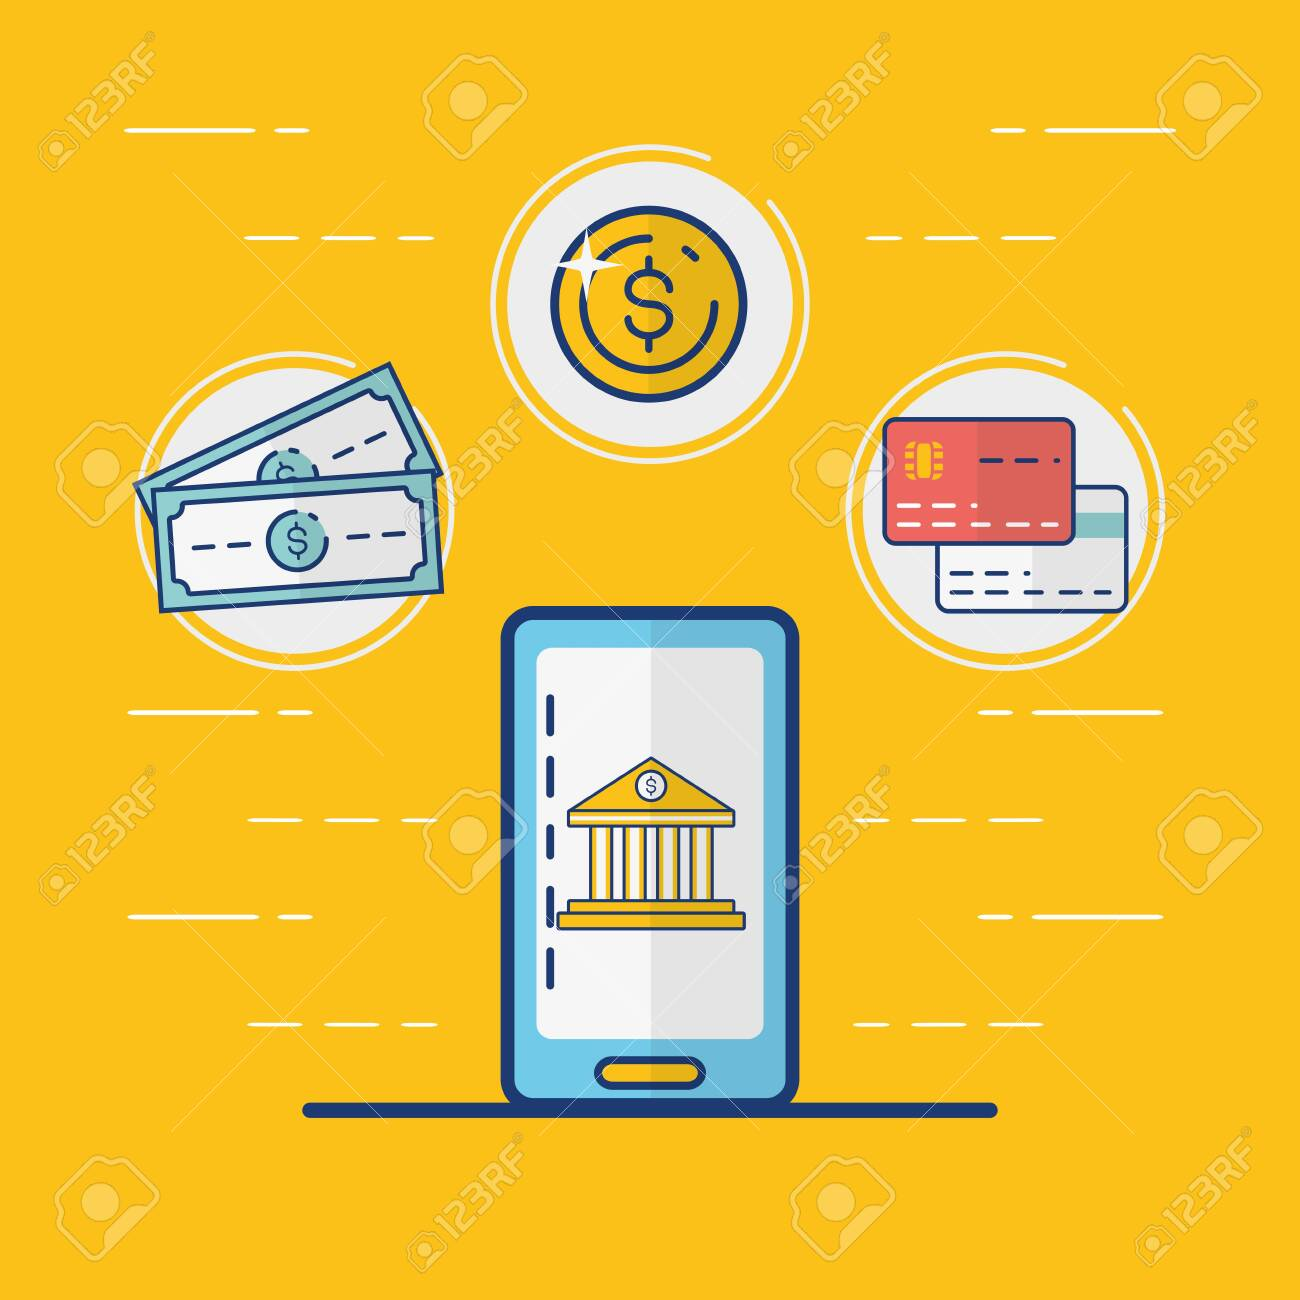 Mobile Bank Cards Money Online Payment Vector Illustration Royalty Free Cliparts Vectors And Stock Illustration Image 121507401